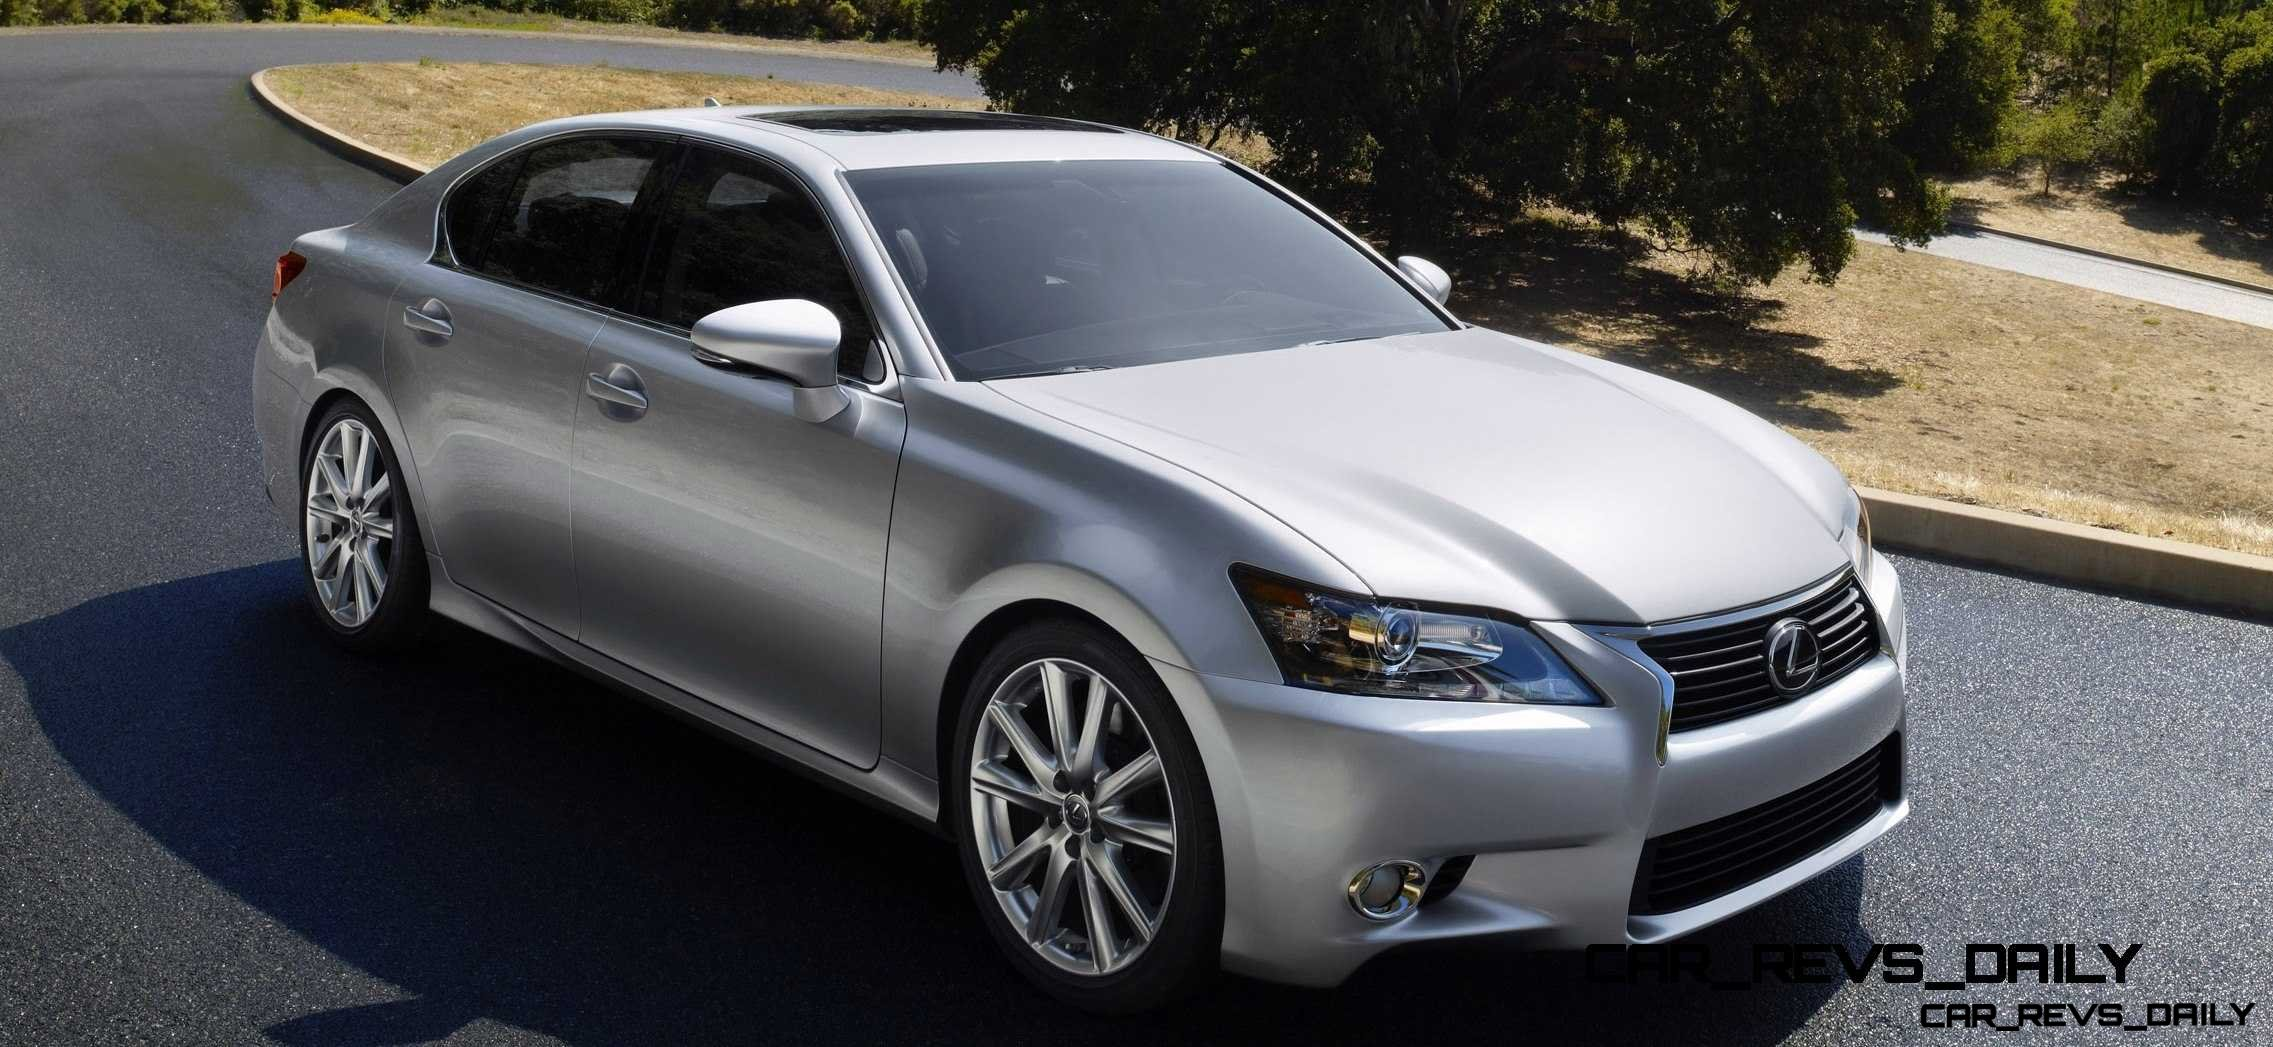 road test review 2014 lexus gs350 awd is quick and balanced with killer 835w audio system. Black Bedroom Furniture Sets. Home Design Ideas